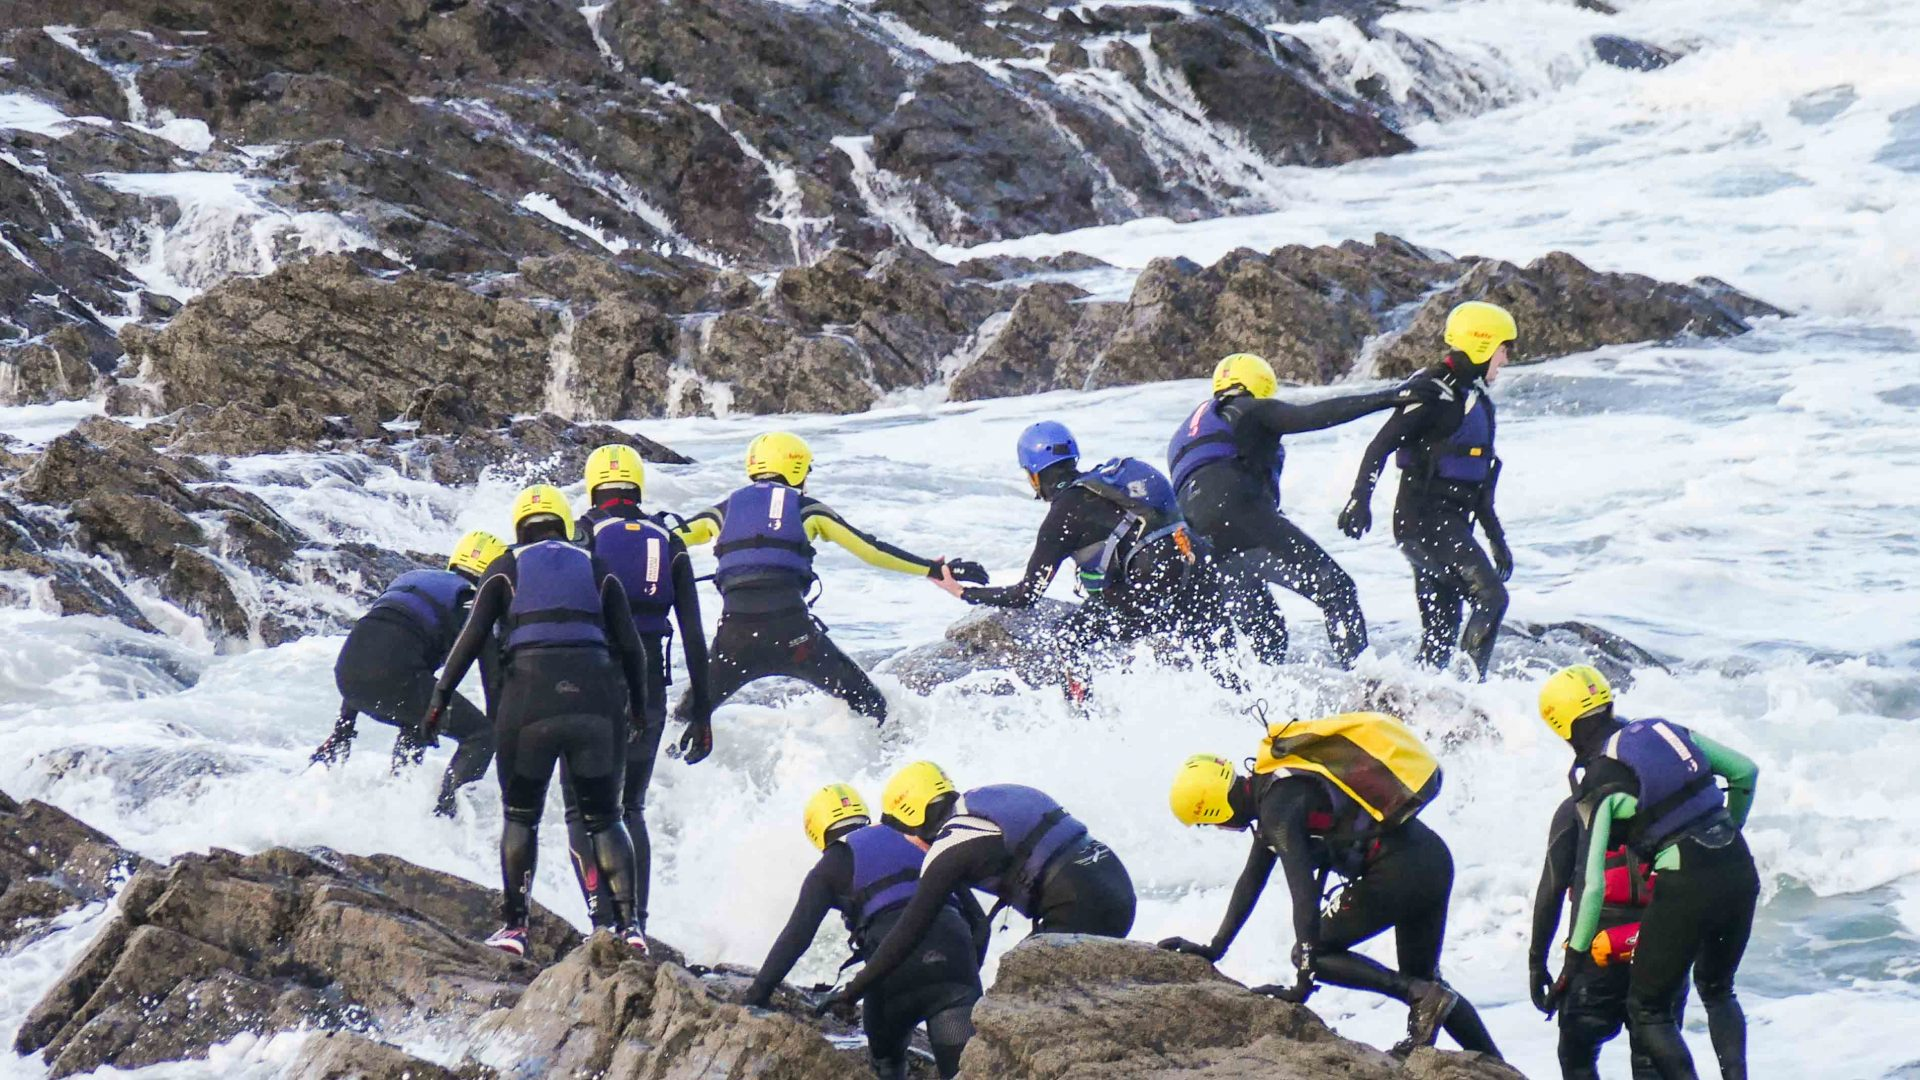 Clients on a coasteering adventure make their way carefully across the rocks.